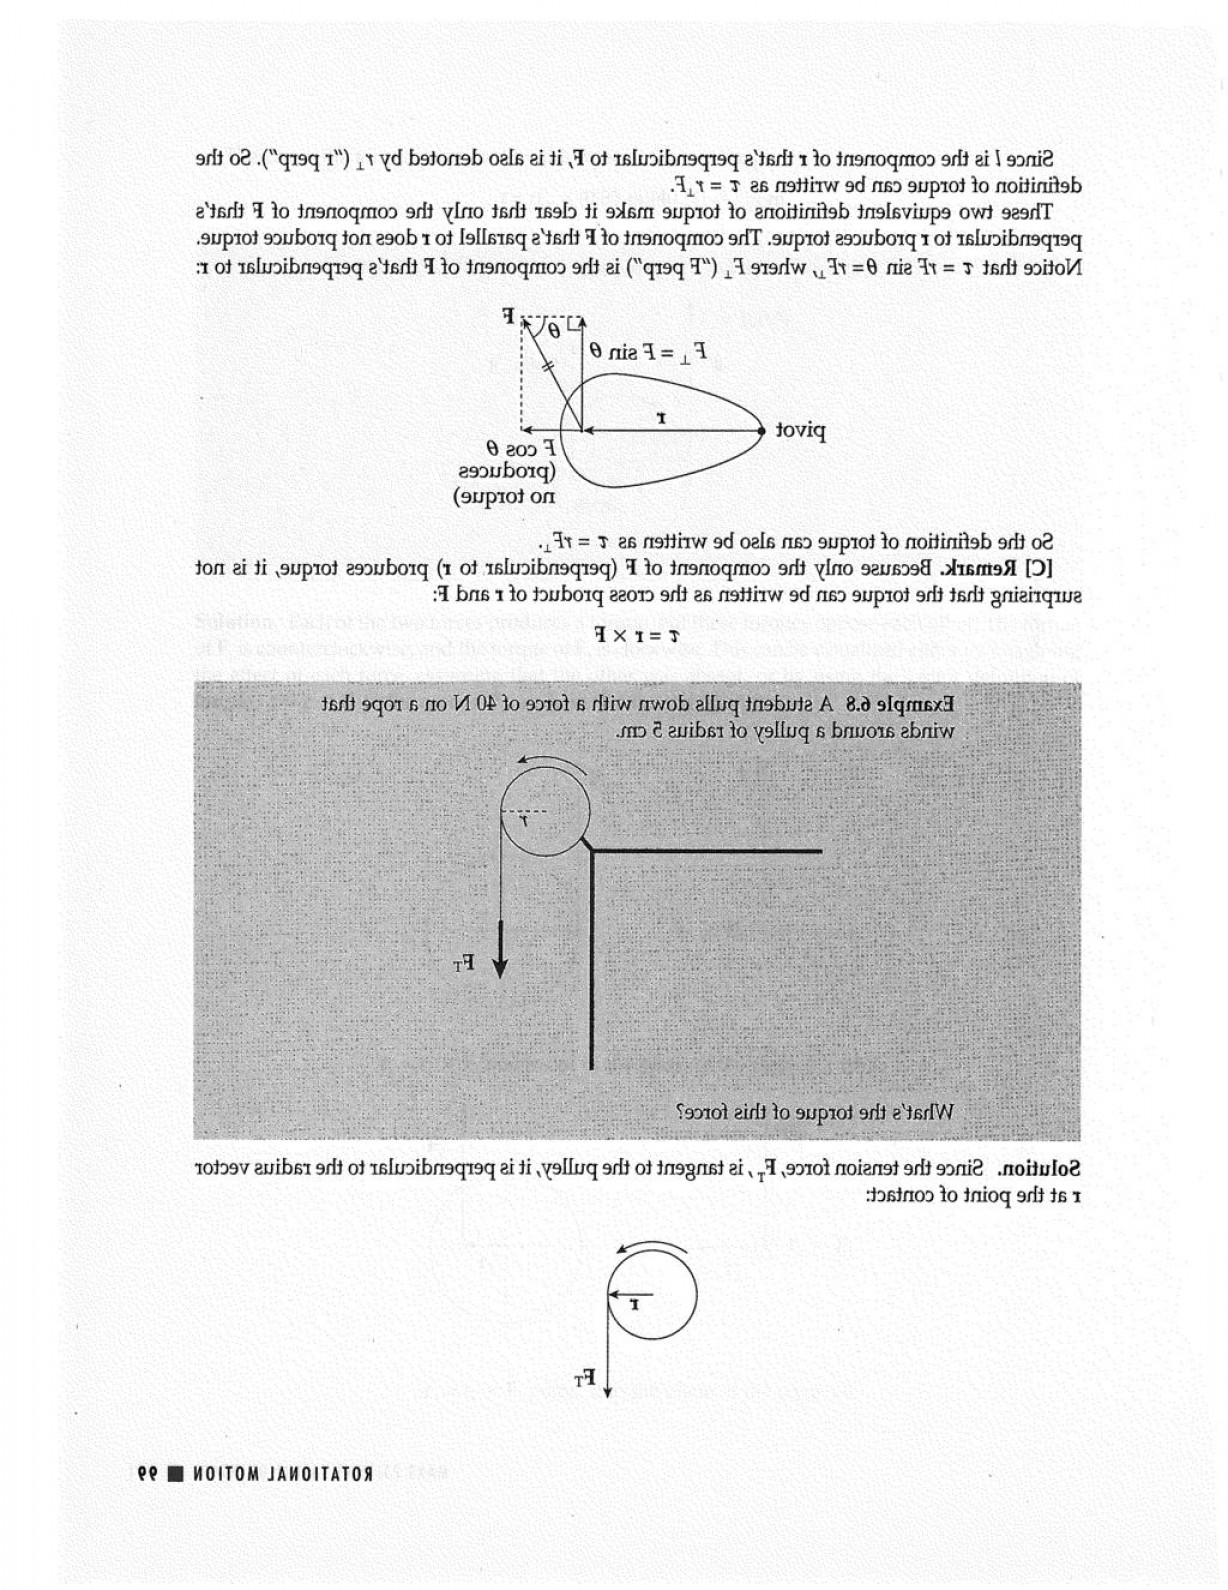 Rotational Kinematics Diagram Of Vectors: Lsj And Ii Ati Introduction Pure Translation